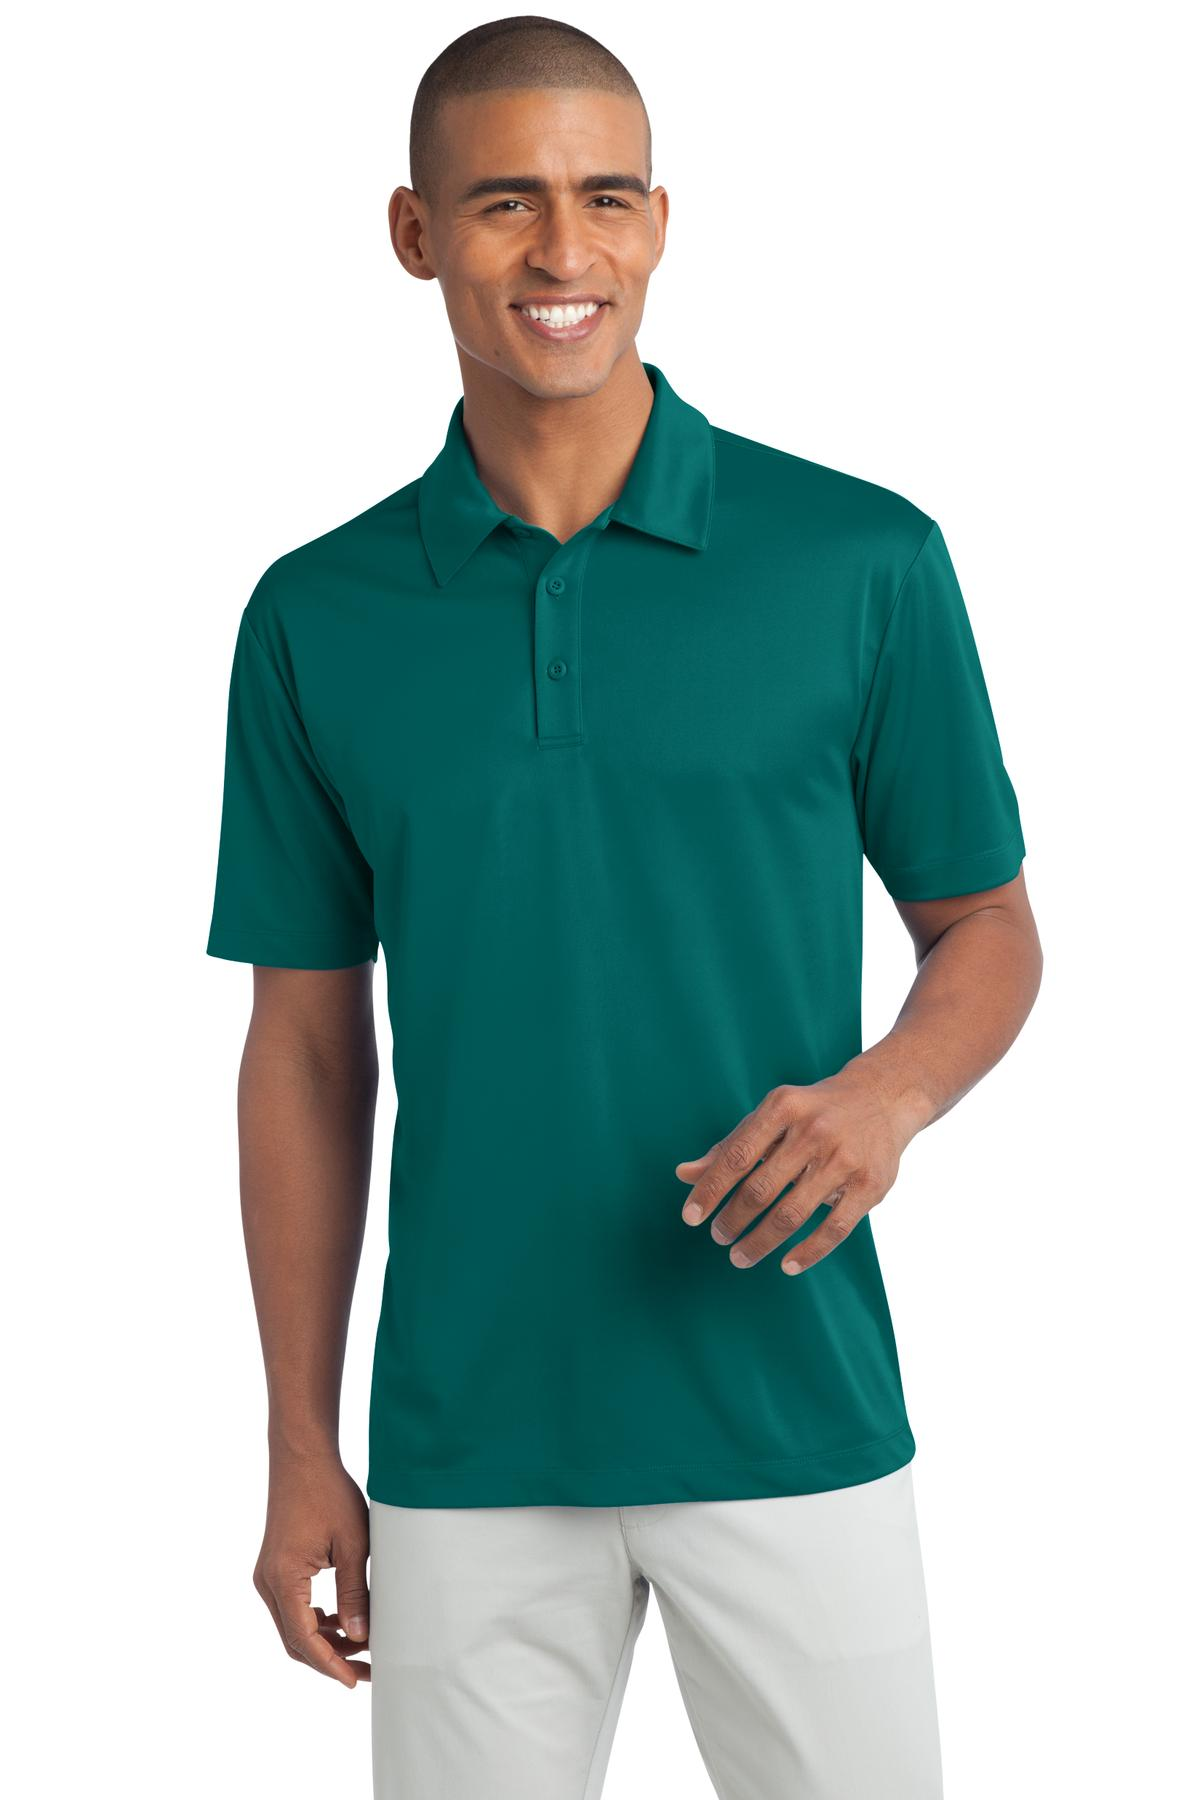 Teal Green Port Authority Silk Touch Performance Polo.